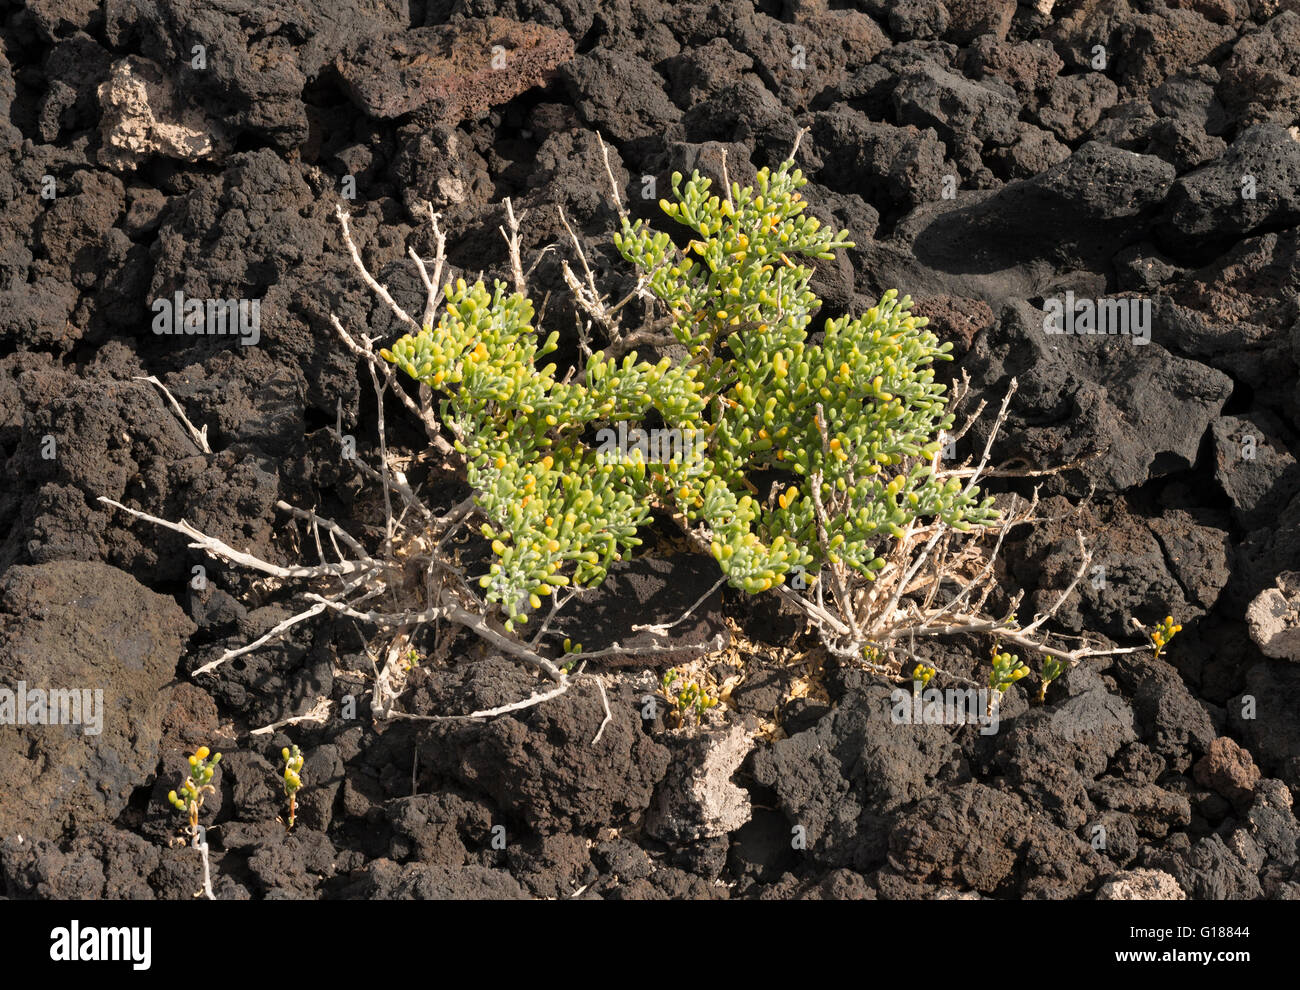 Zygophyllum fontanesii (uvilla de mar, sea grape), a very salt-tolerant plant which grows close to the sea in the Stock Photo